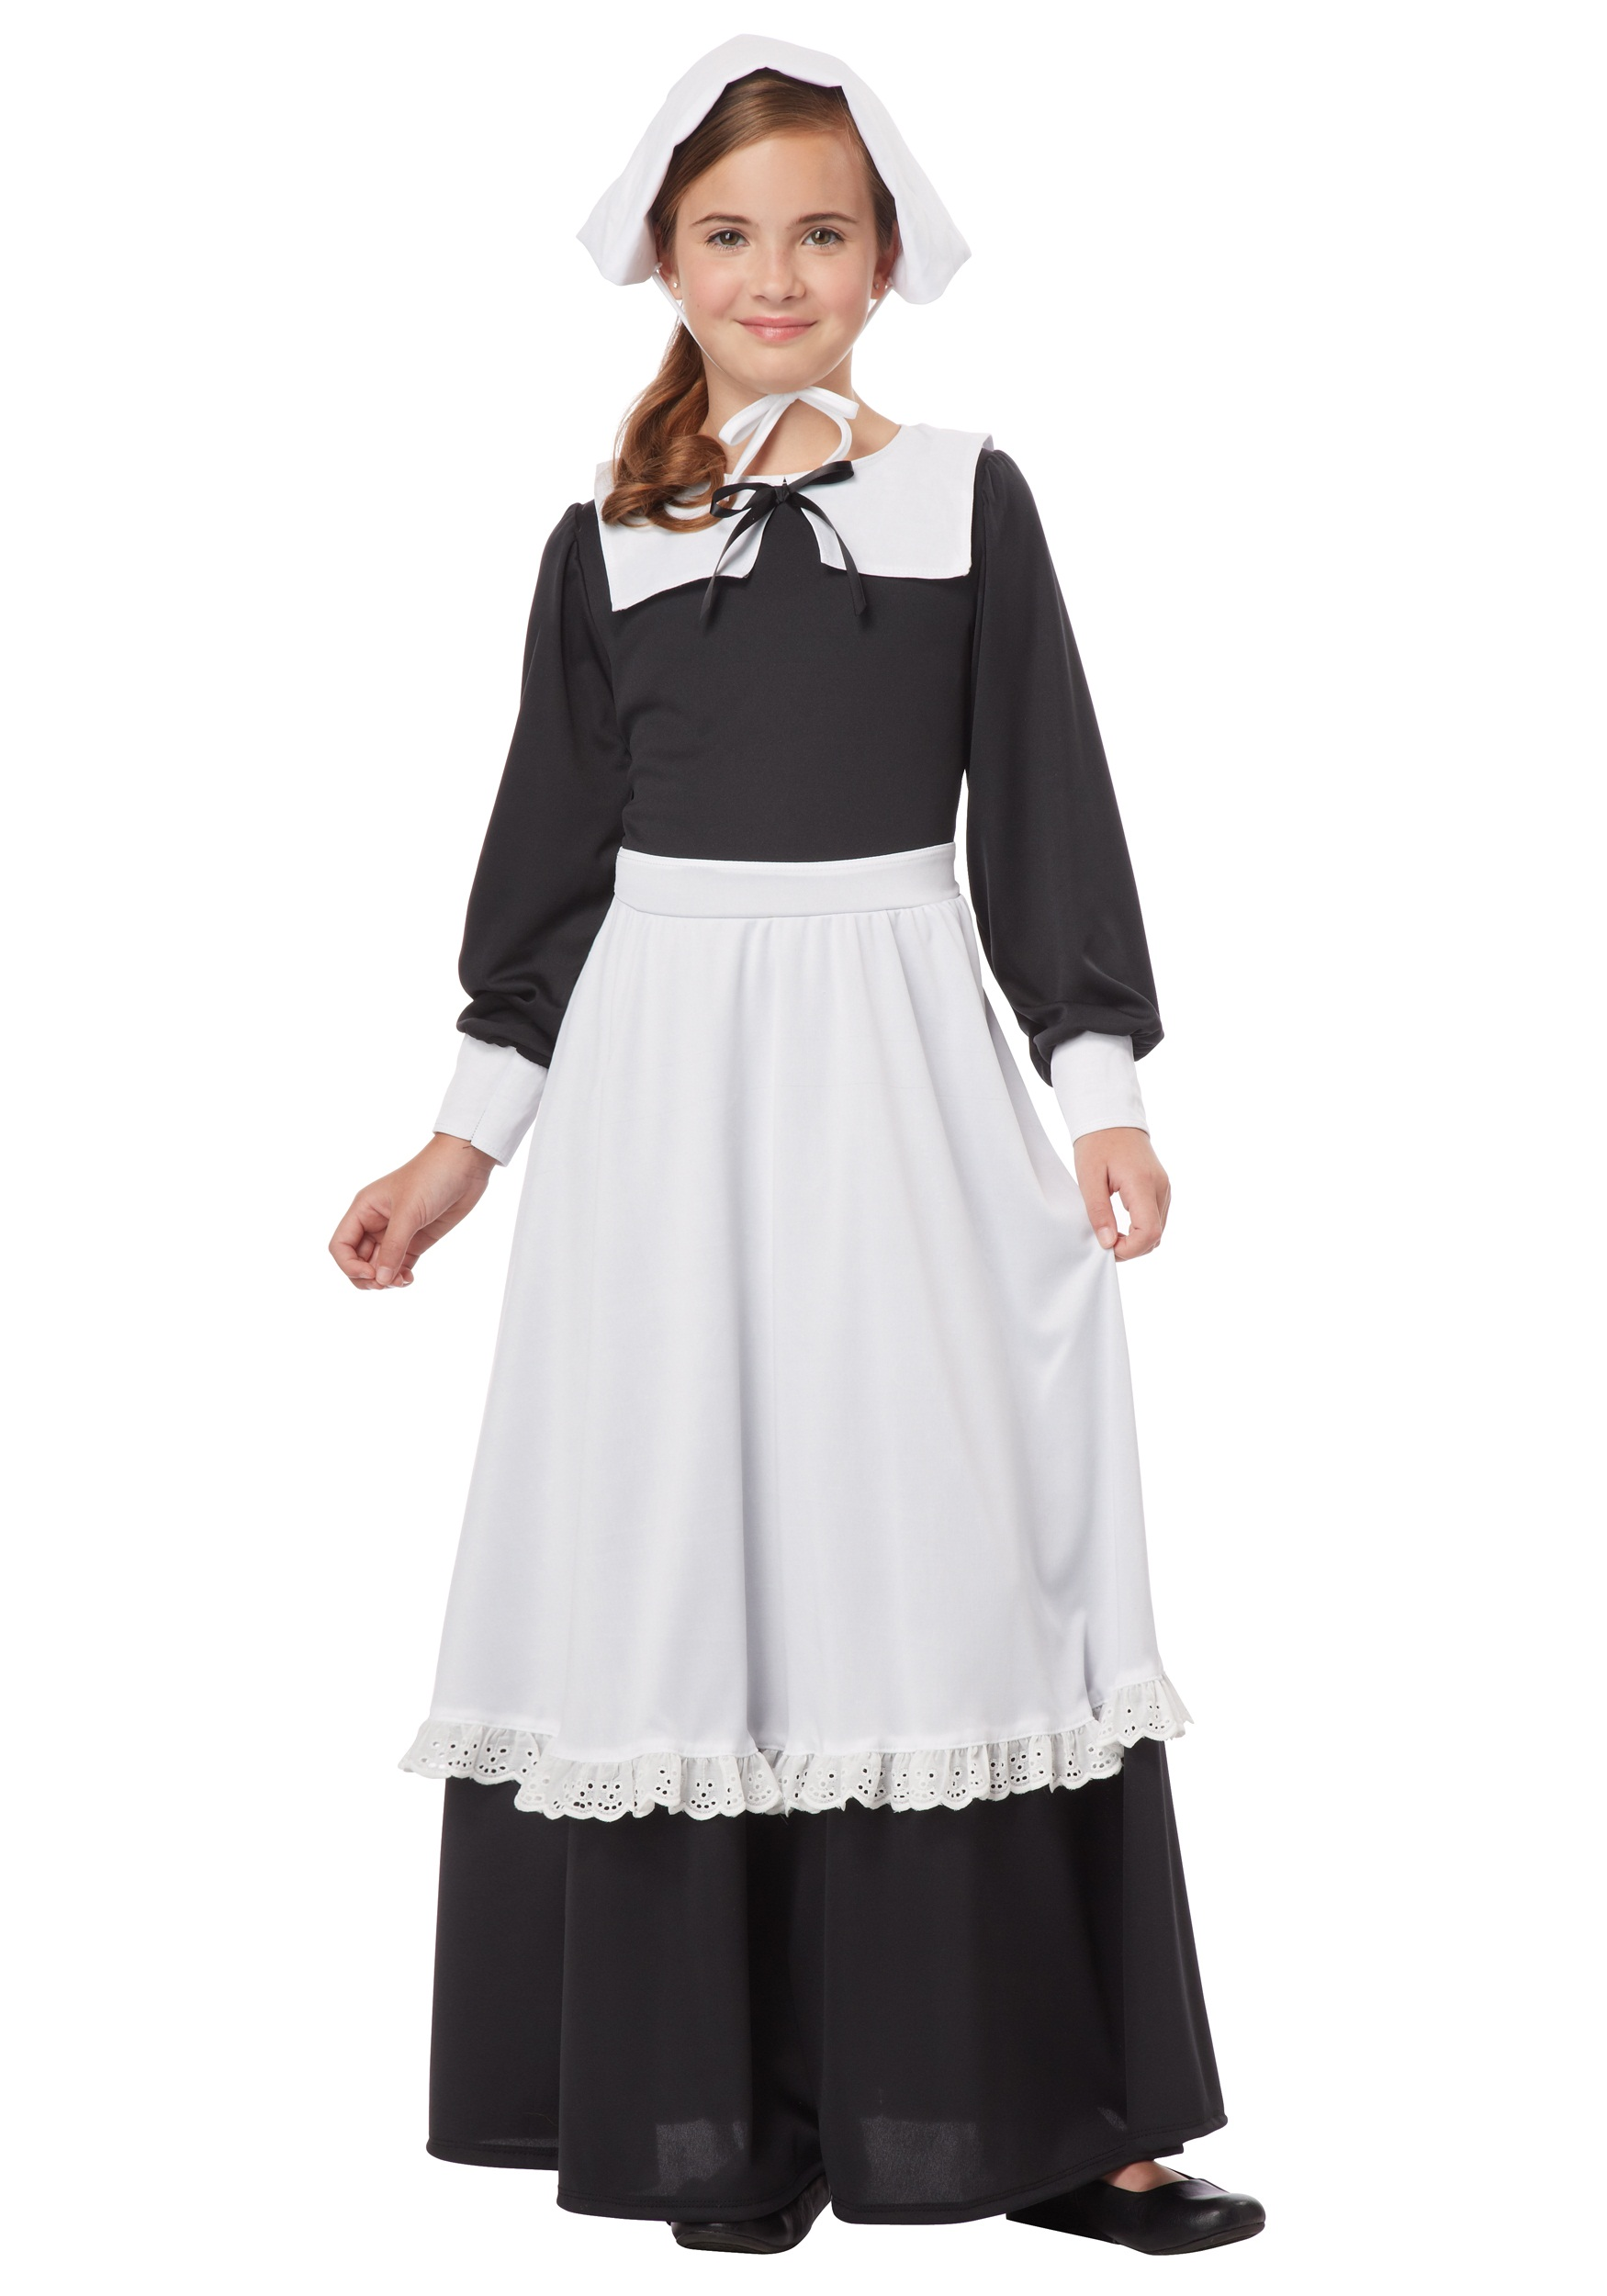 Pilgrim Girl Costume  sc 1 st  Halloween Costumes & Colonial Costumes u0026 Revolutionary War Outfits - HalloweenCostumes.com